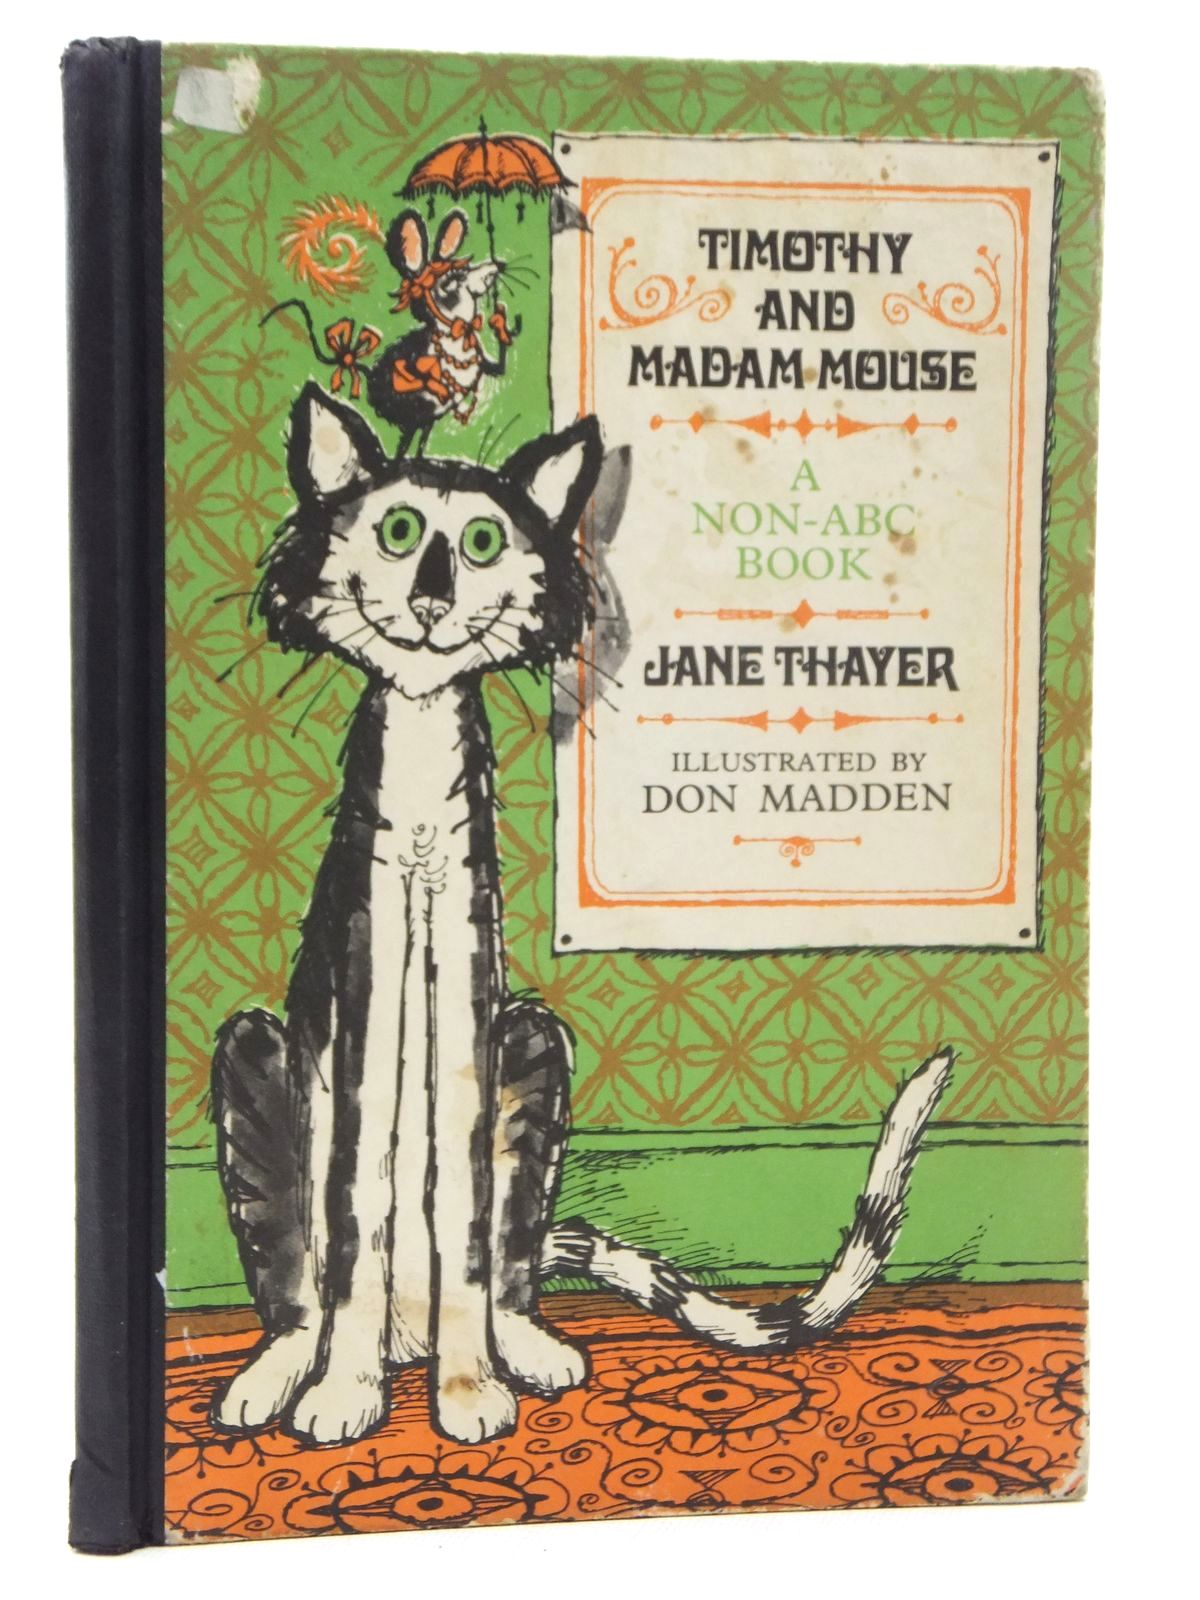 Photo of TIMOTHY AND MADAM MOUSE A NON-ABC BOOK written by Thayer, Jane illustrated by Madden, Don published by World's Work Ltd. (STOCK CODE: 2123794)  for sale by Stella & Rose's Books